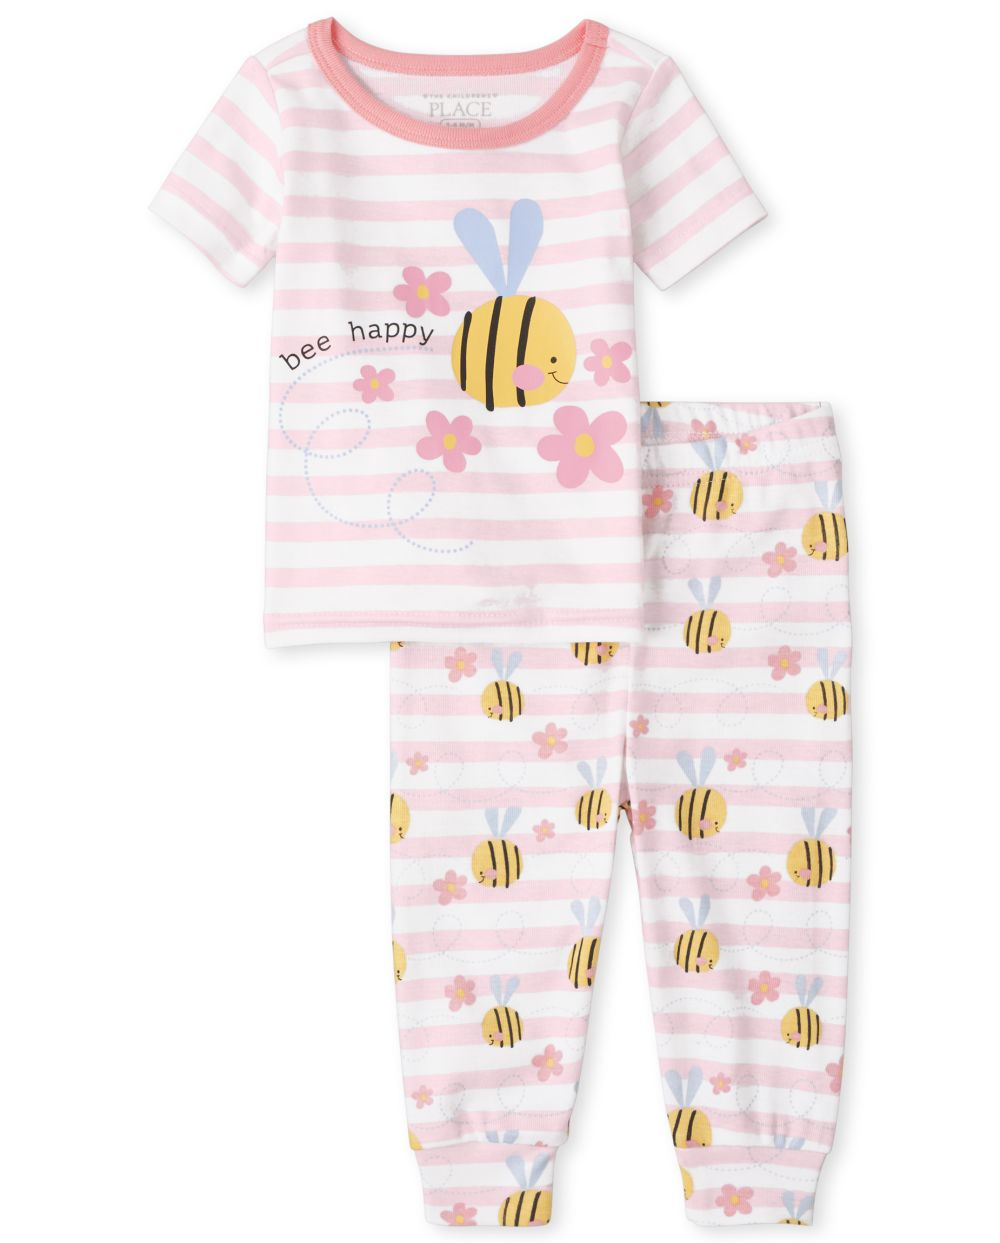 Baby And Toddler Bee Striped Snug Fit Cotton Pajamas - Pink